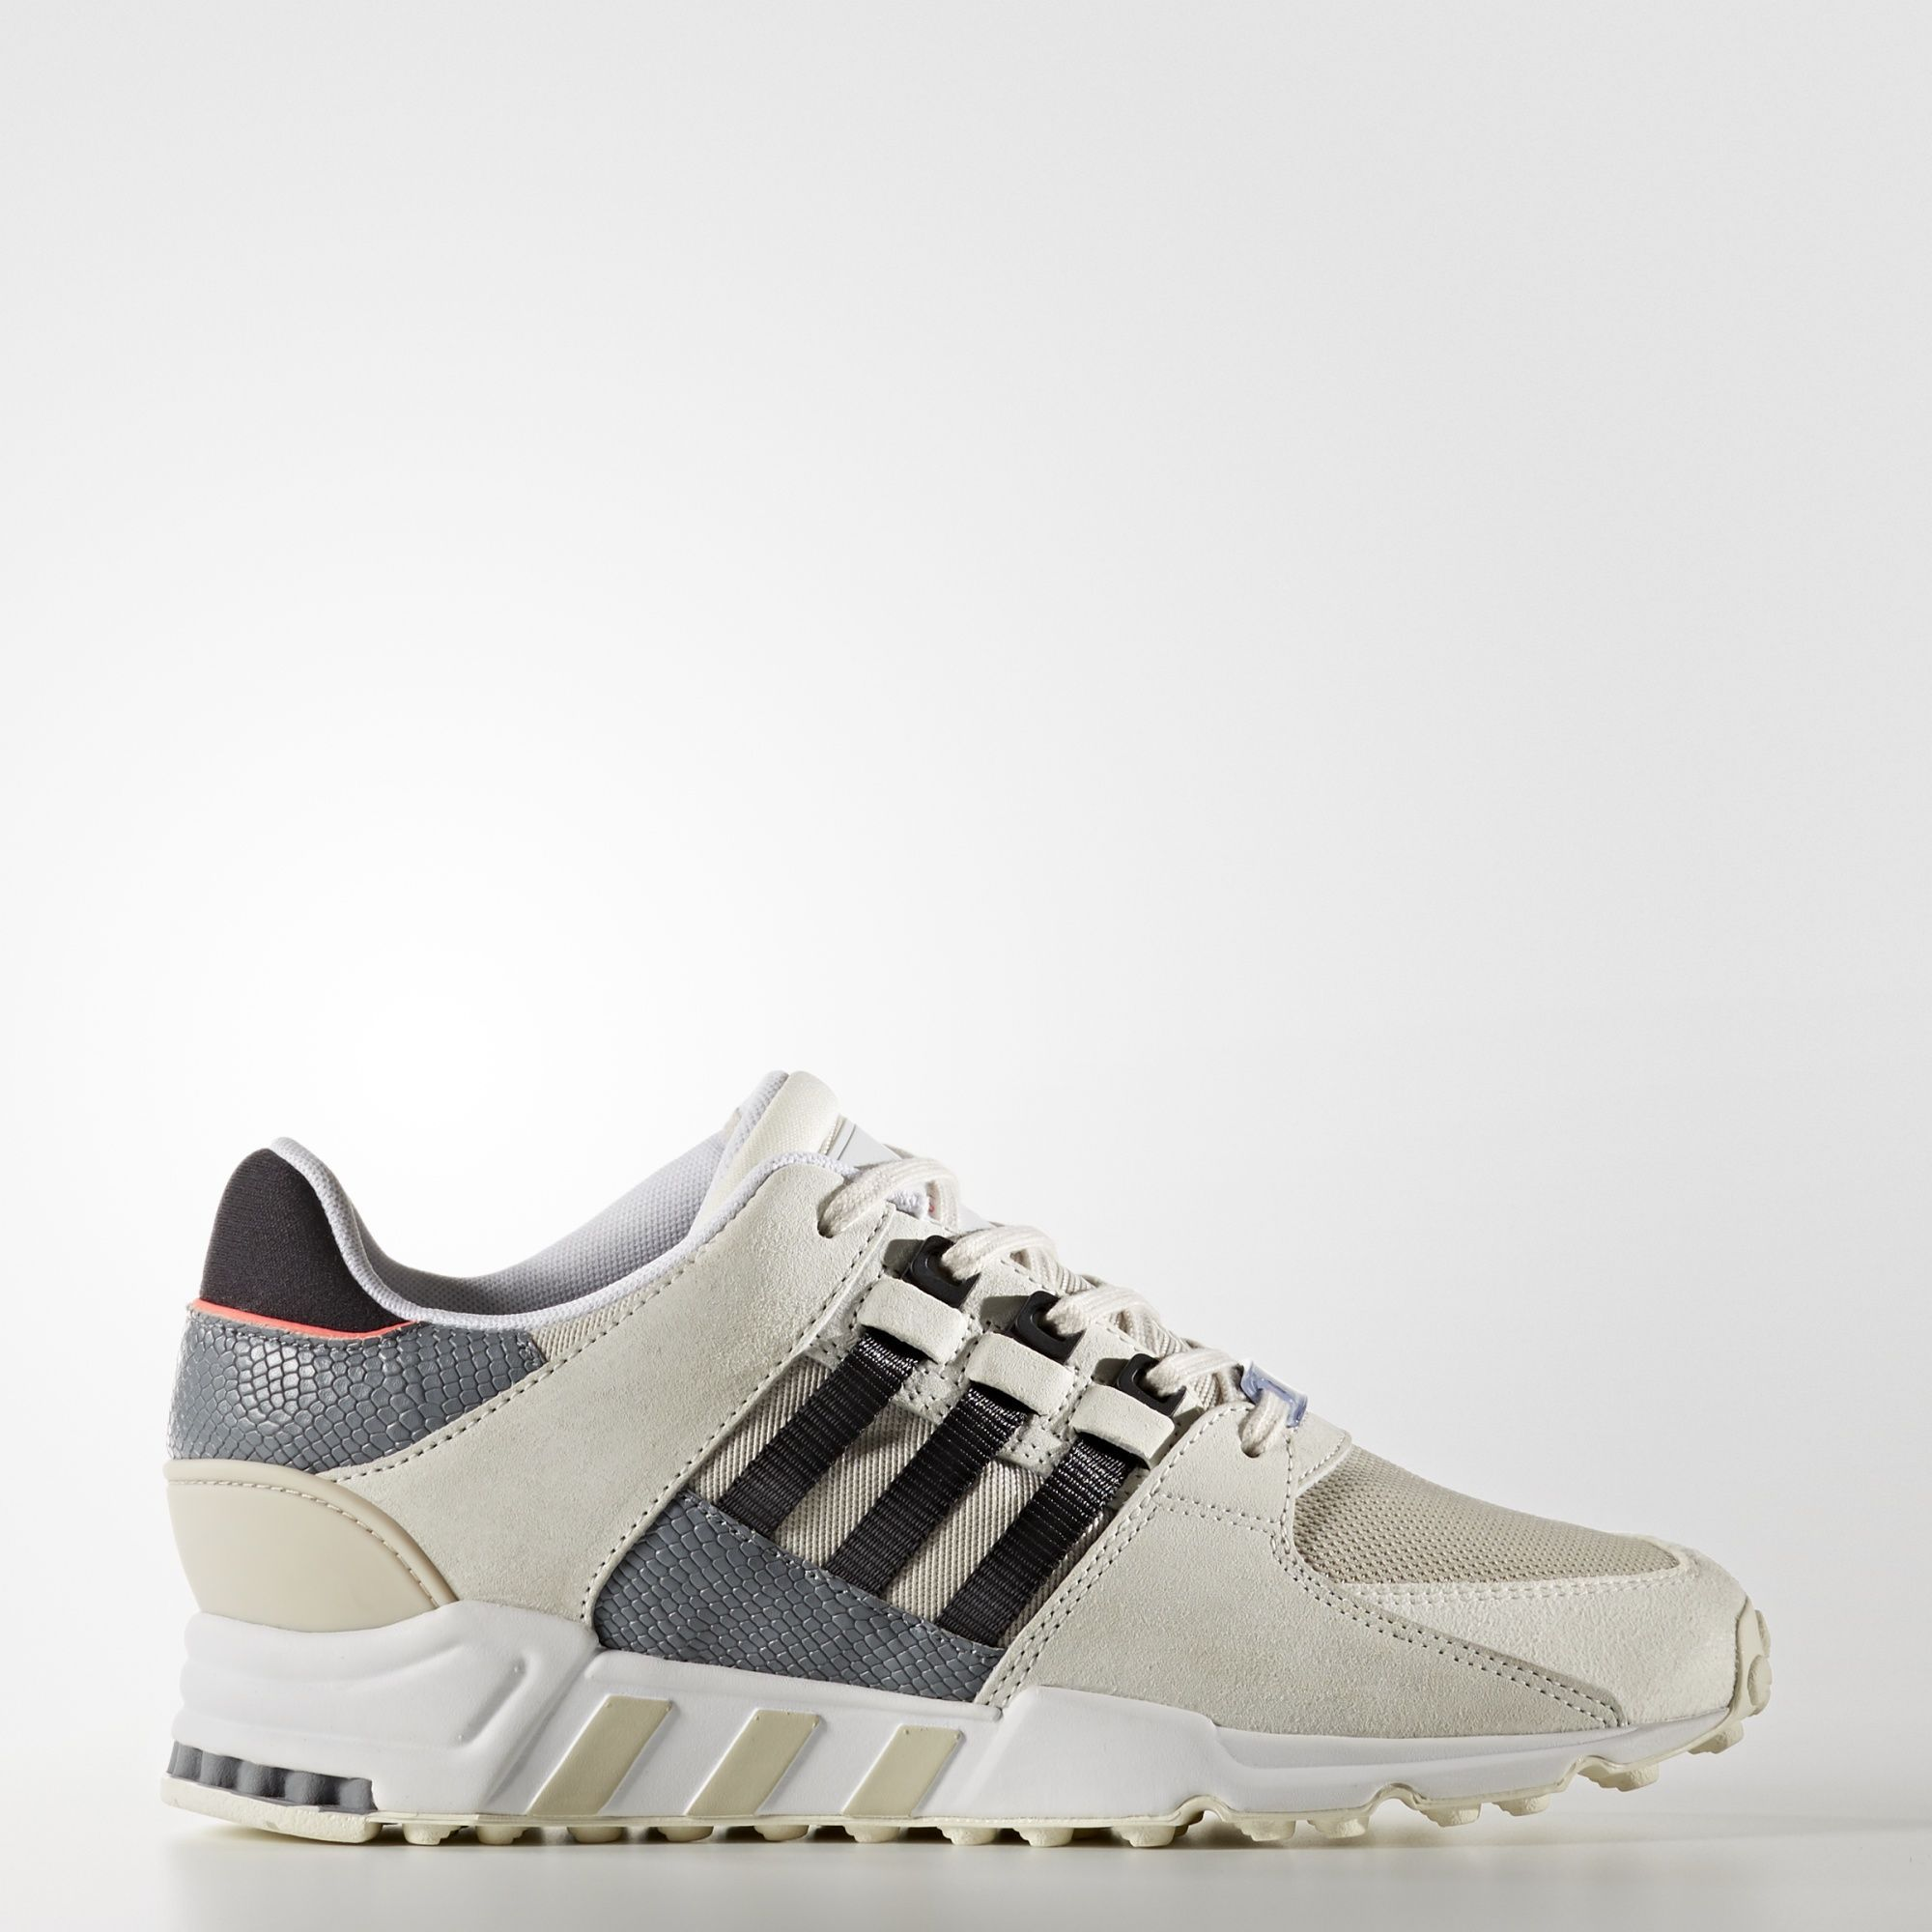 adidas - EQT SUPPORT RF W · AdidasWoman ShoesSneakers